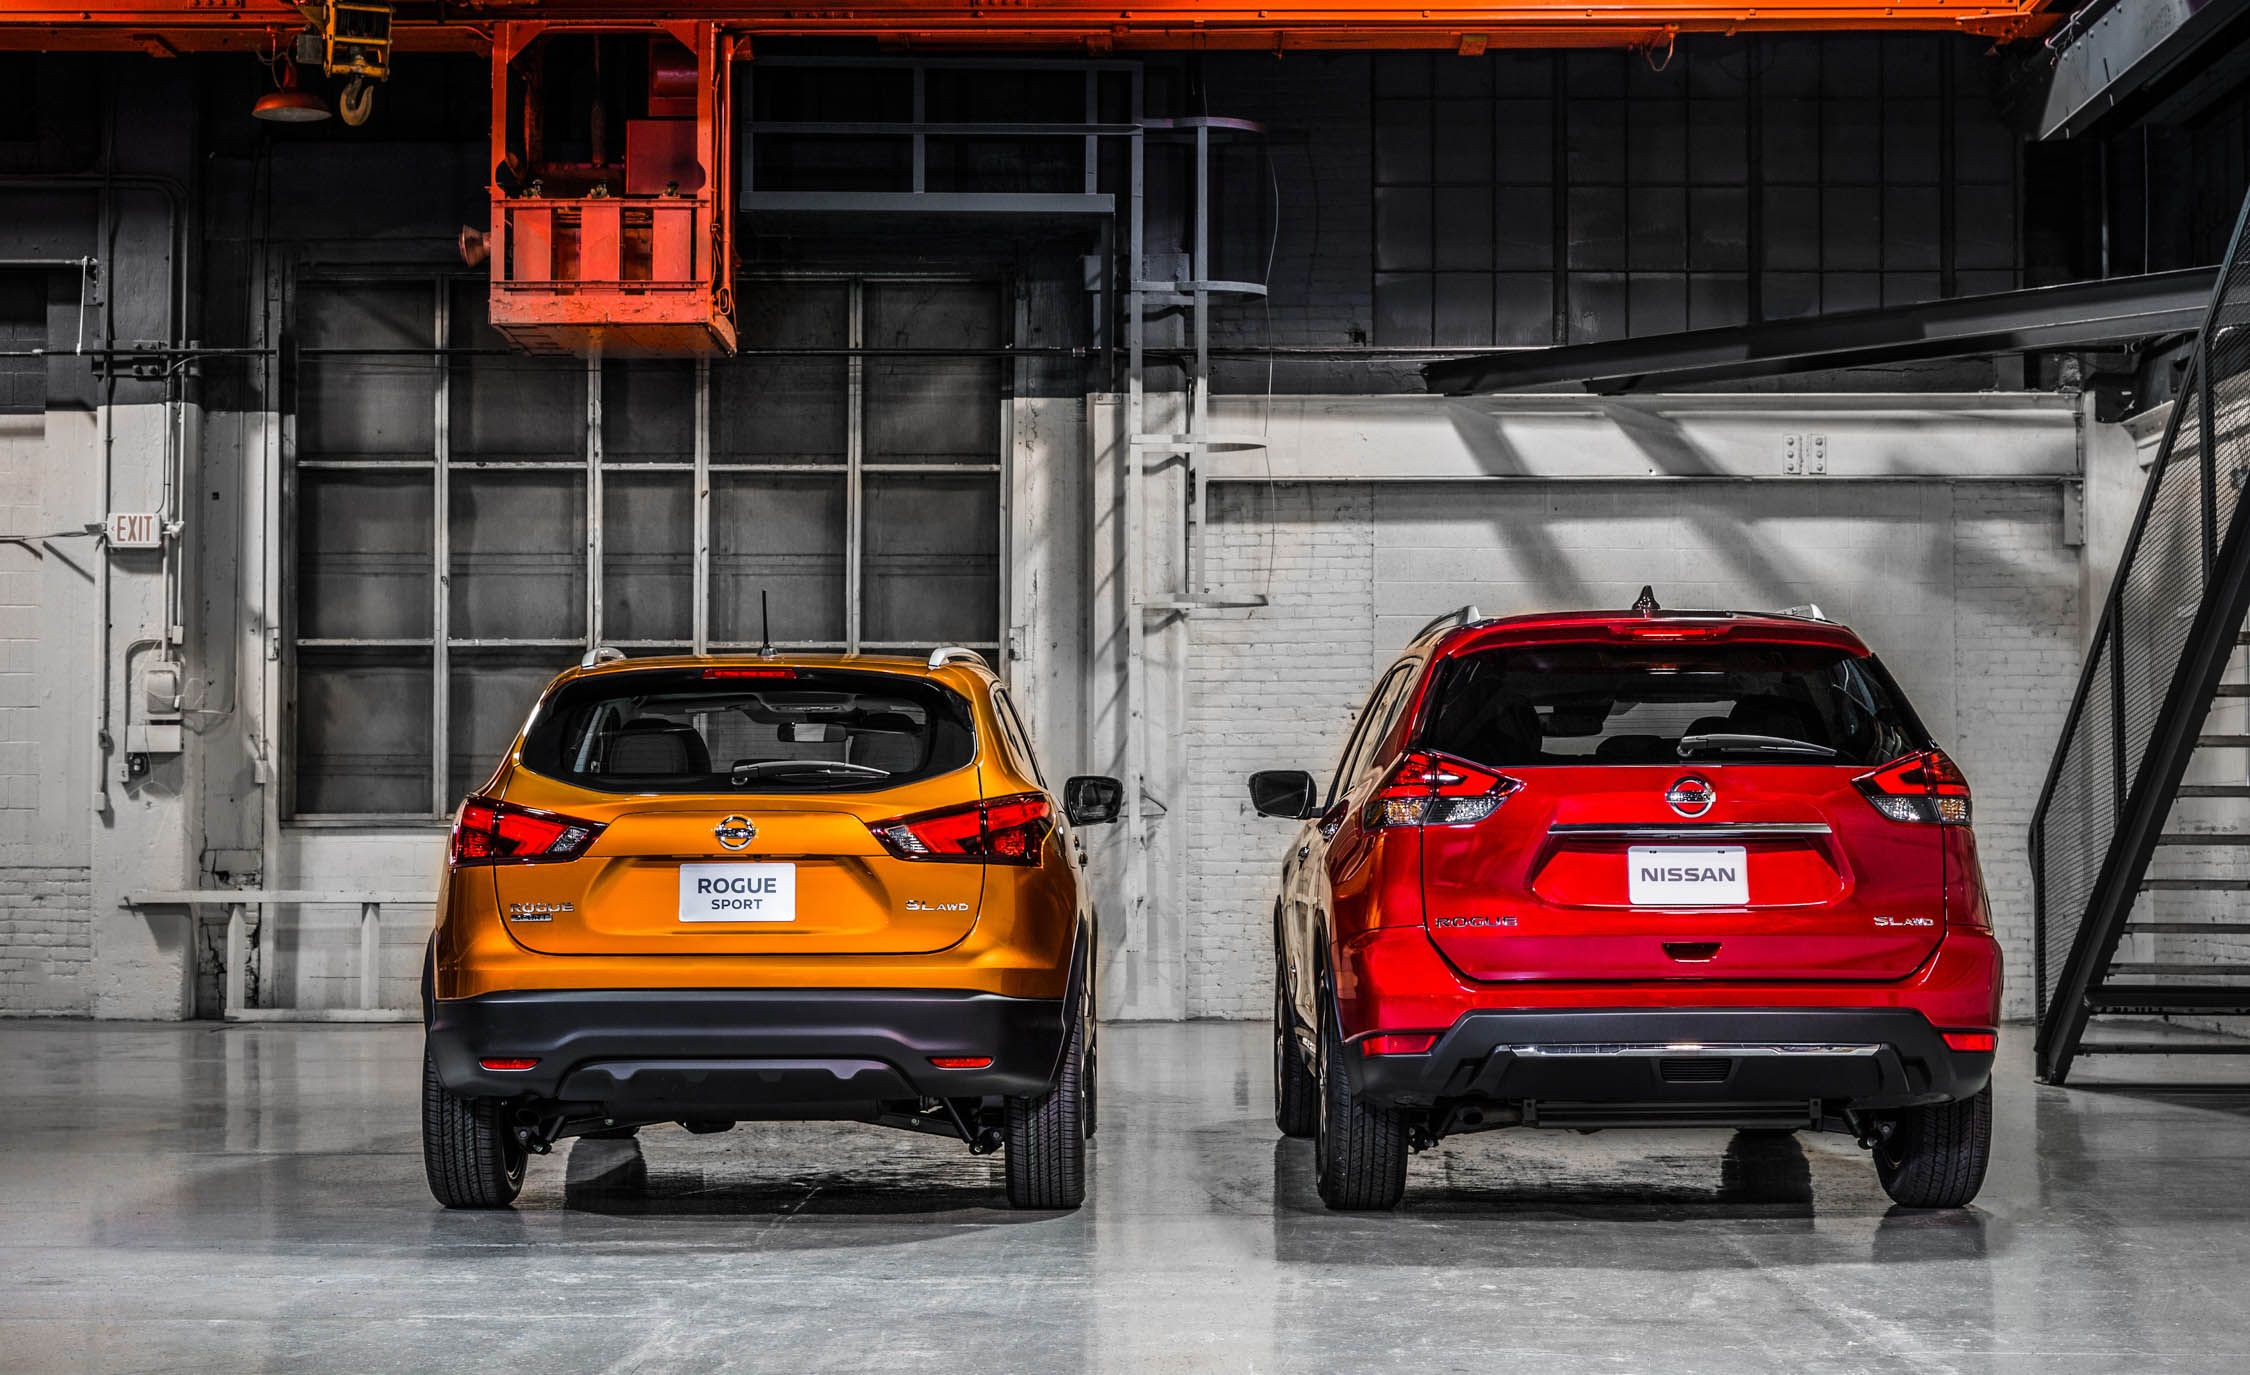 why it's nissan rogue sport in u.s. and qashqai everywhere else